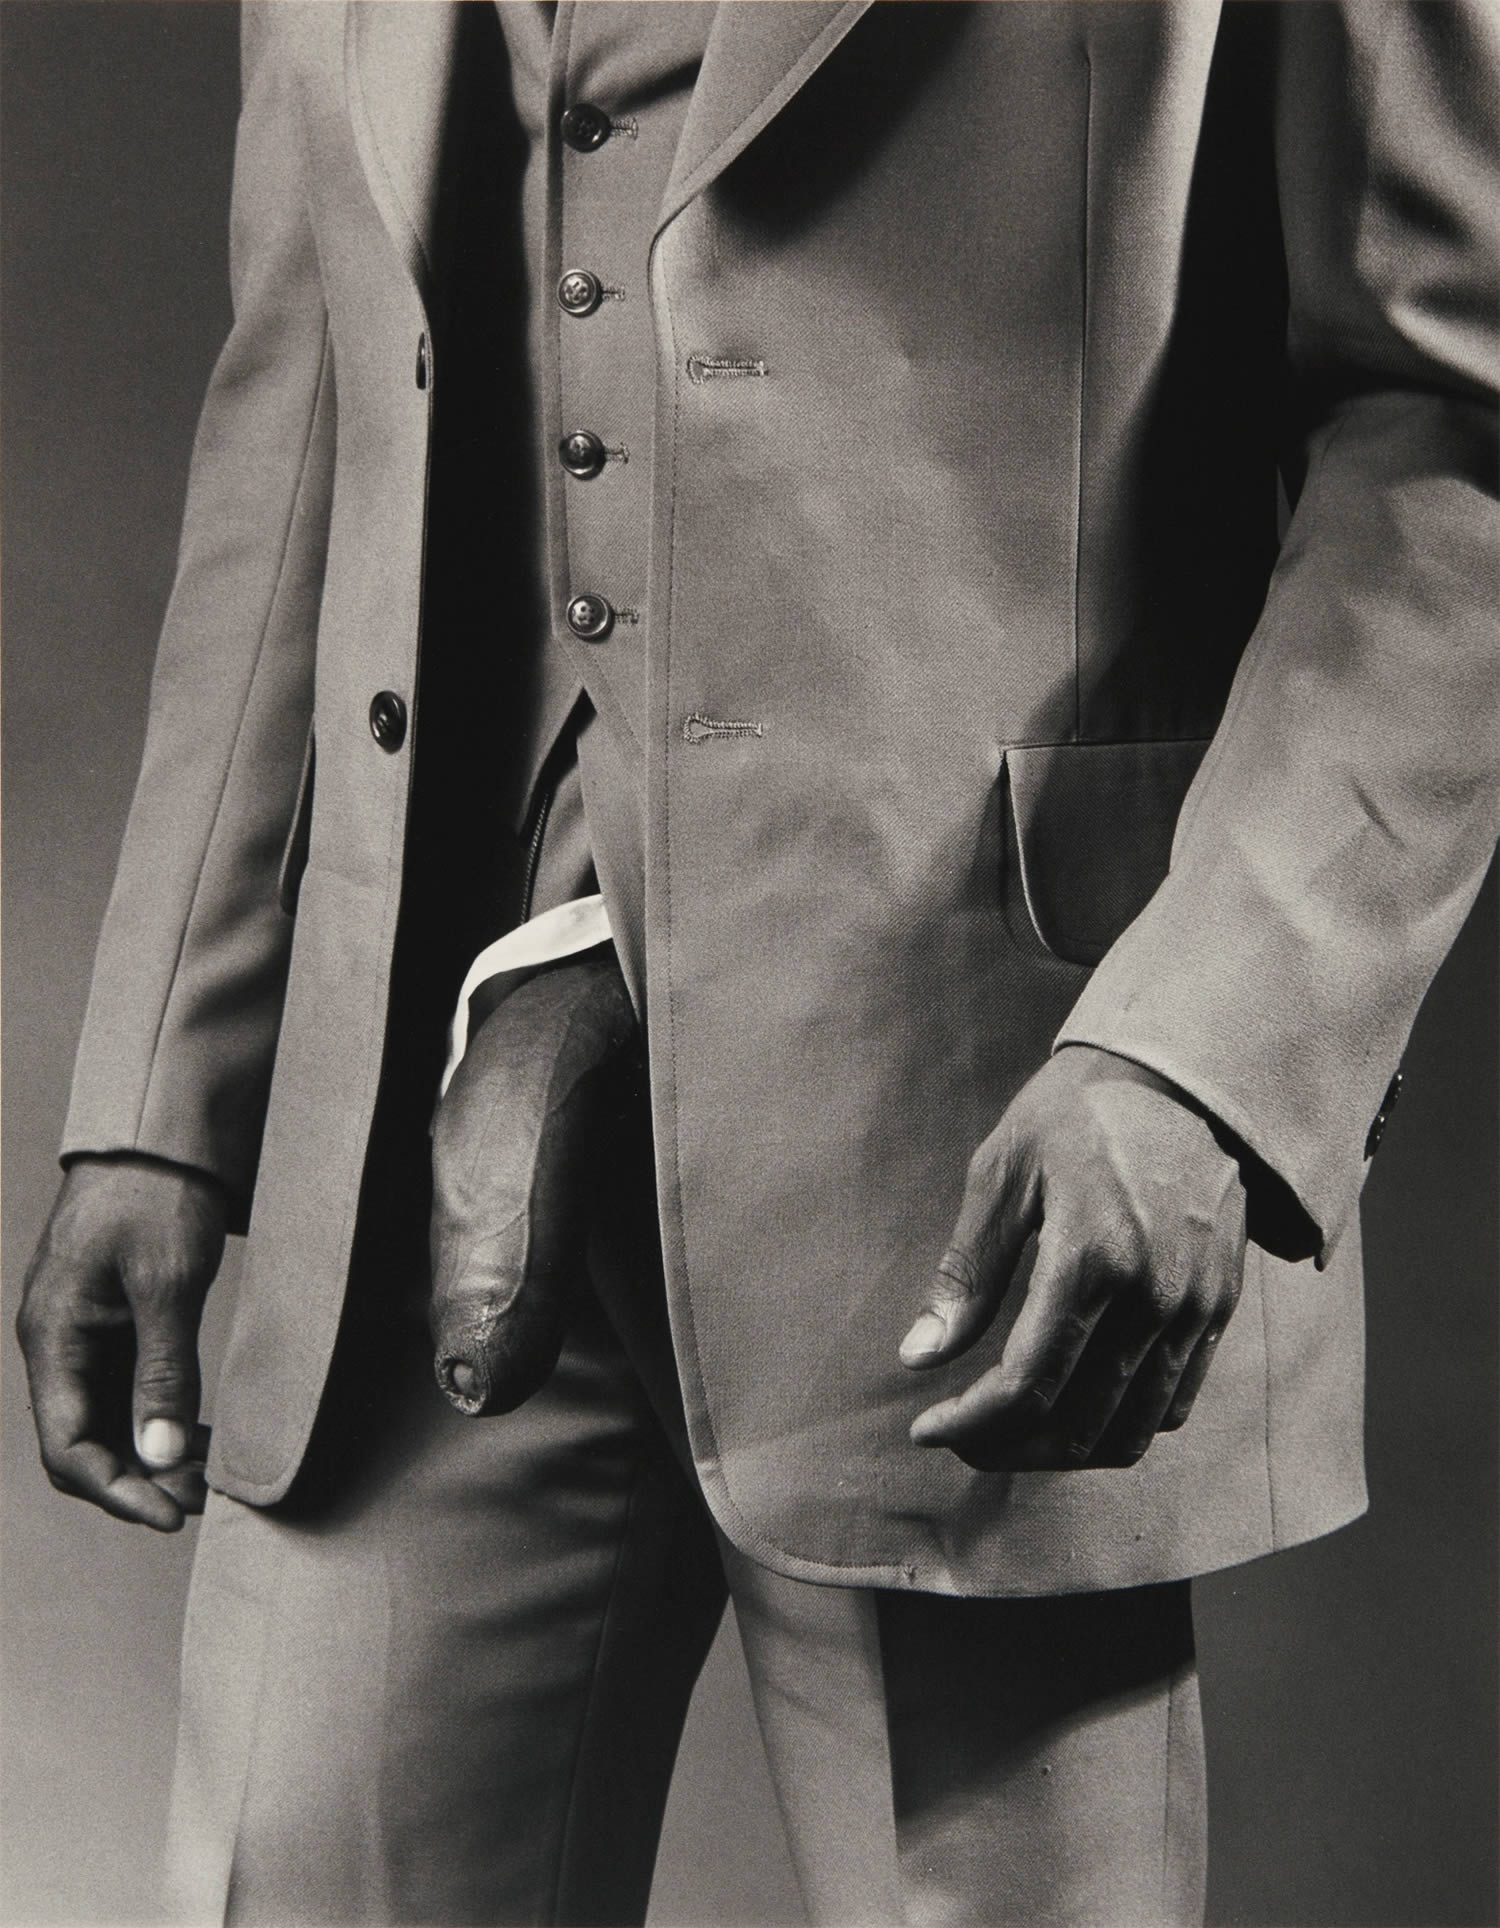 man in suit, © The Robert Mapplethorpe Foundation, Inc.